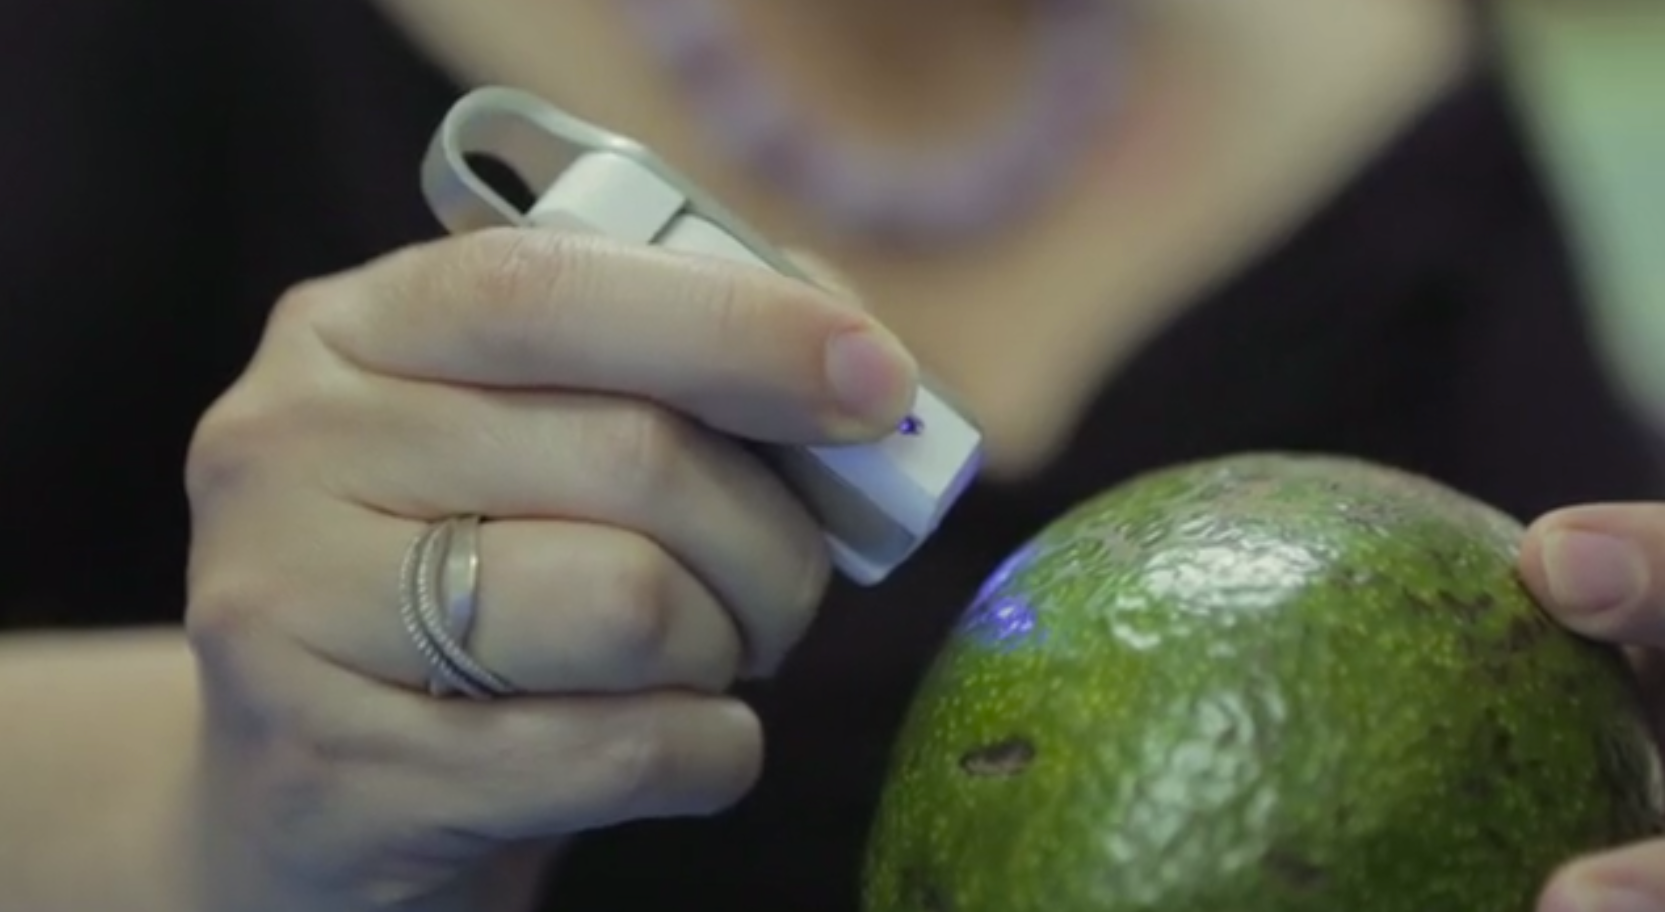 A handheld spectroscopy tool called the SCiO shines a blue light on an avocado to check its molecular composition.